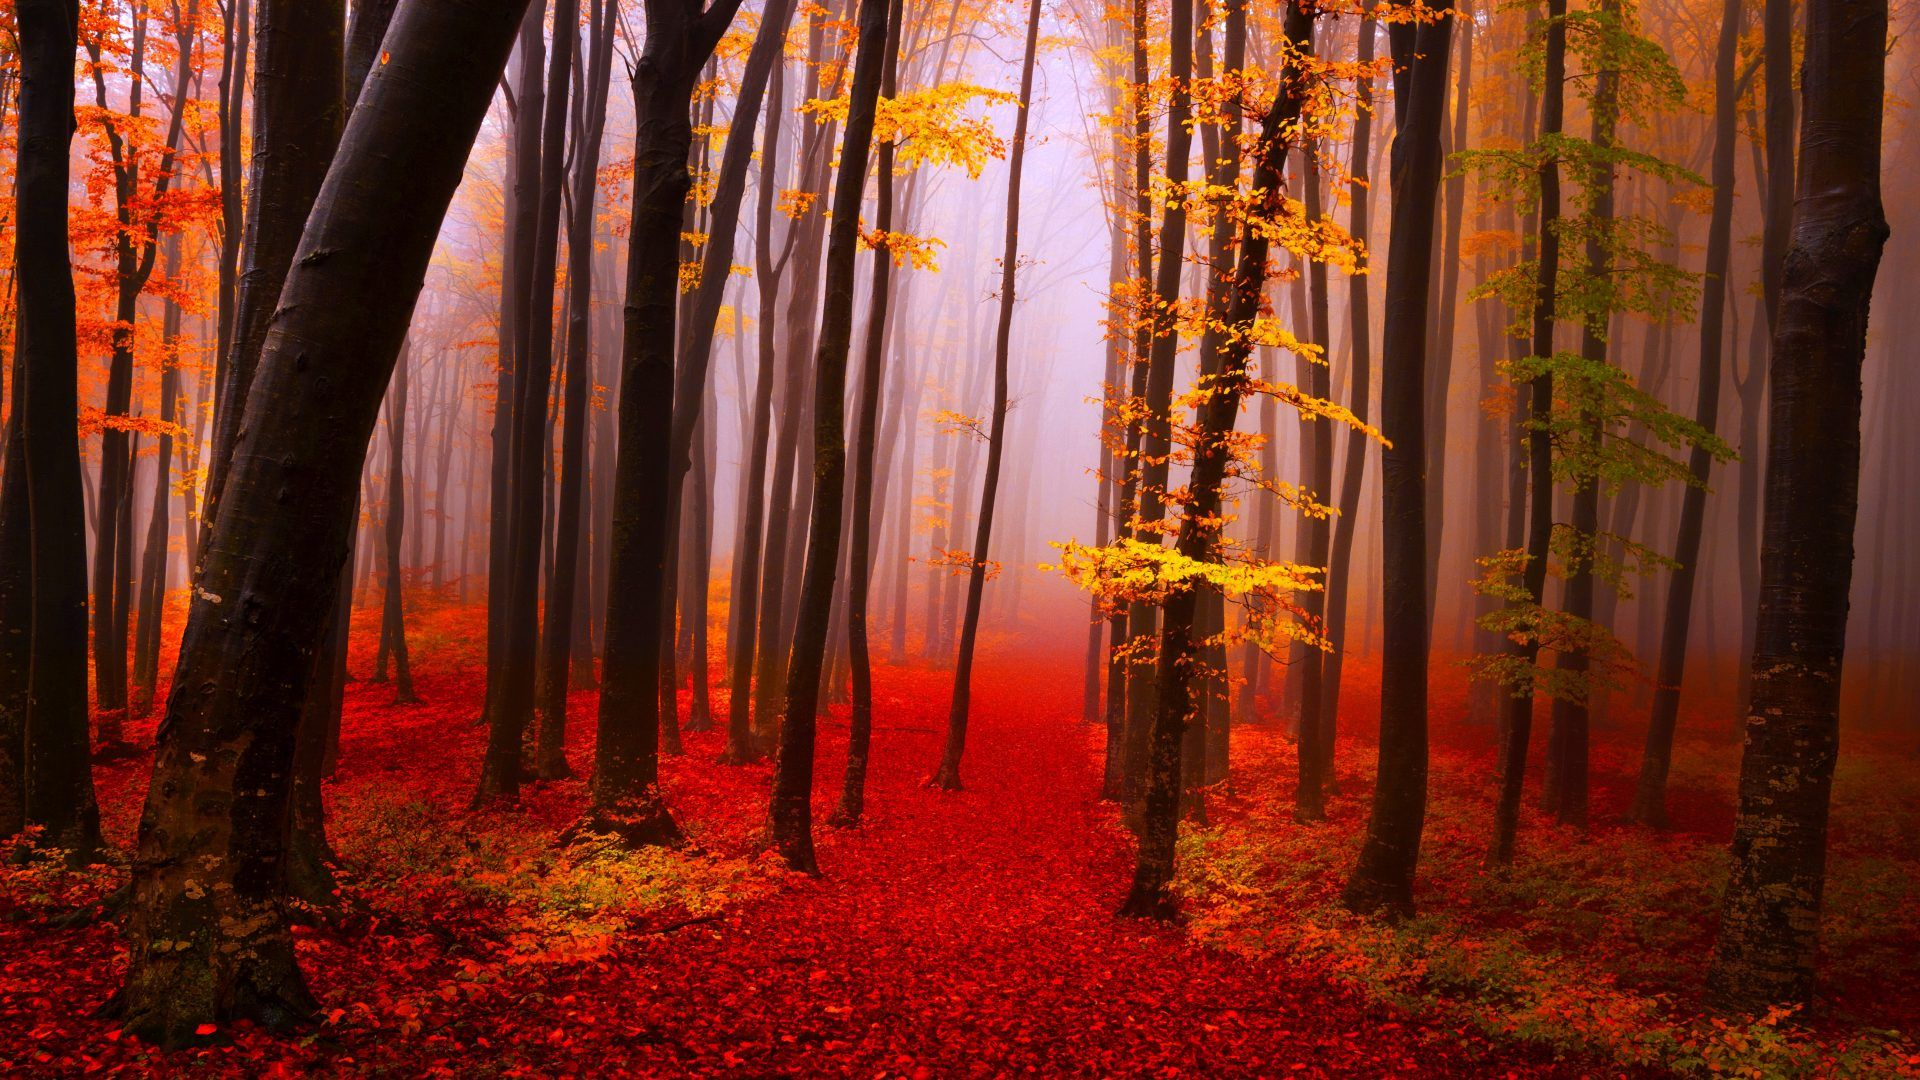 Autumn Forest Calmness Serenity Walk Path Trees Nature Fall